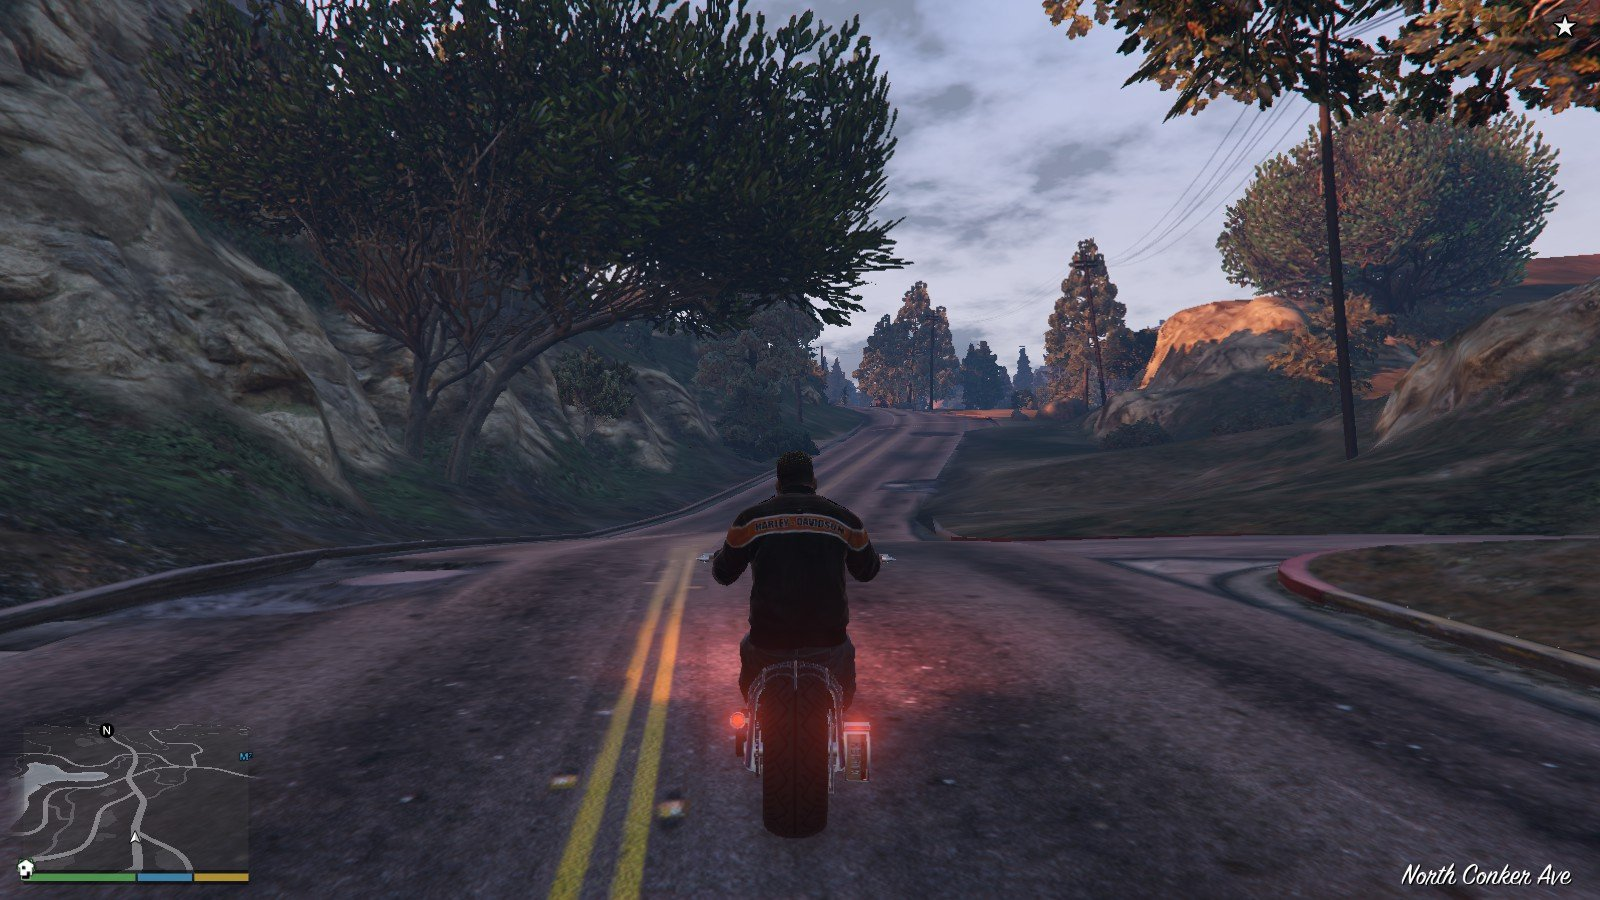 Harley Davidson Motocycle Leather Jacket GTA5 Mods (8)